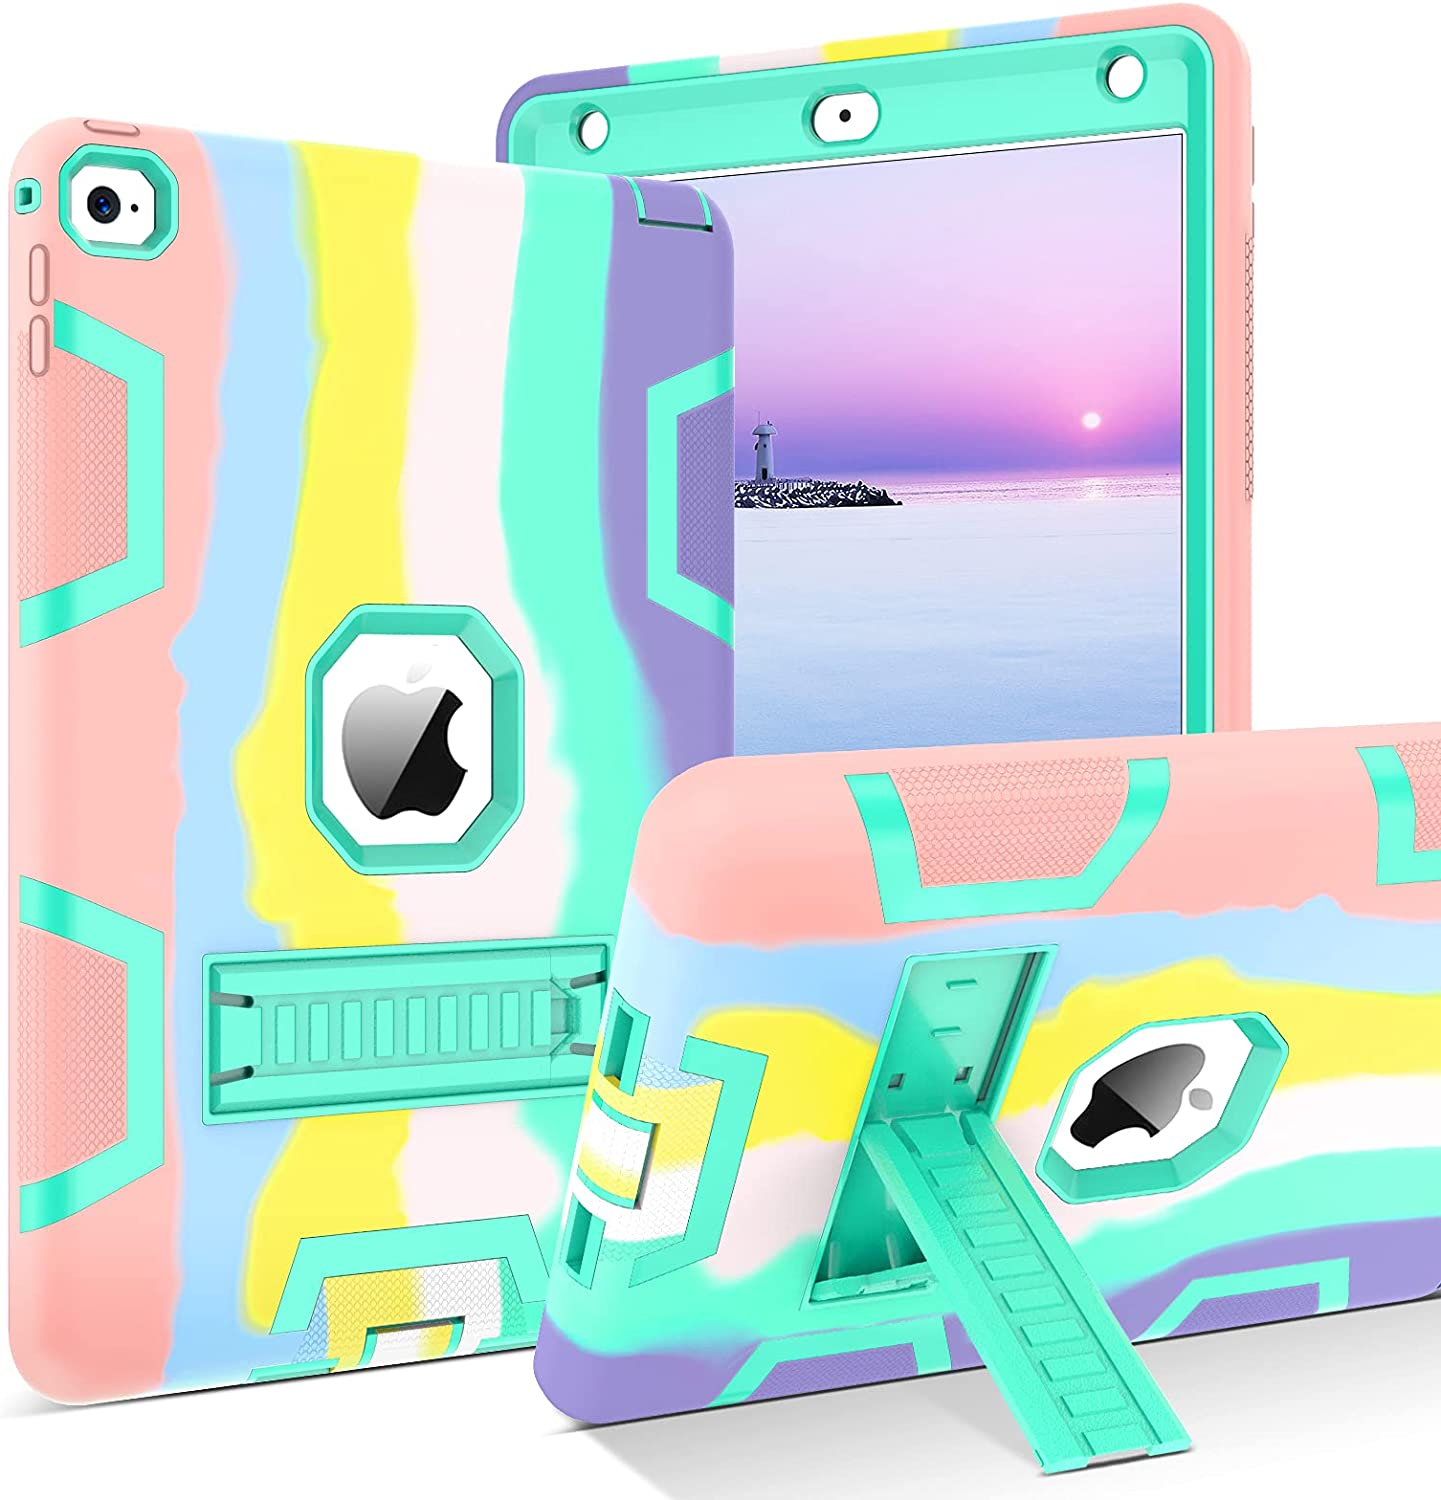 BENTOBEN iPad Air 2 Case, 3 in 1 Hybrid Heavy Duty Rugged Shockproof Kickstand Sturdy Protective Girls Women Boys Men Kids Cute Tablet Case Cover for Apple iPad Air 2 9.7